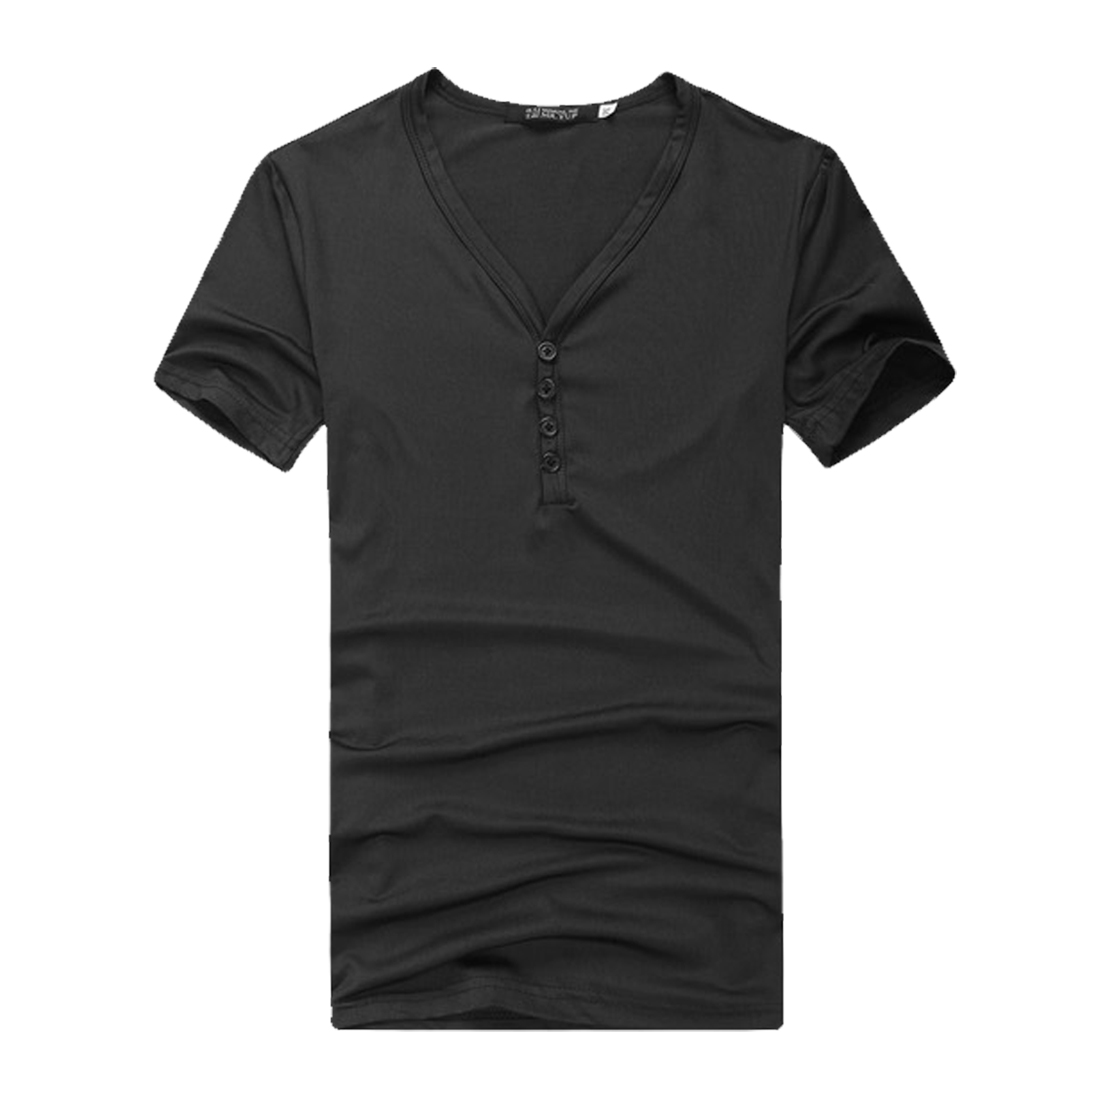 Mens Black Stylish Buttoned Detail Short-sleeved Leisure Tee Shirt XL